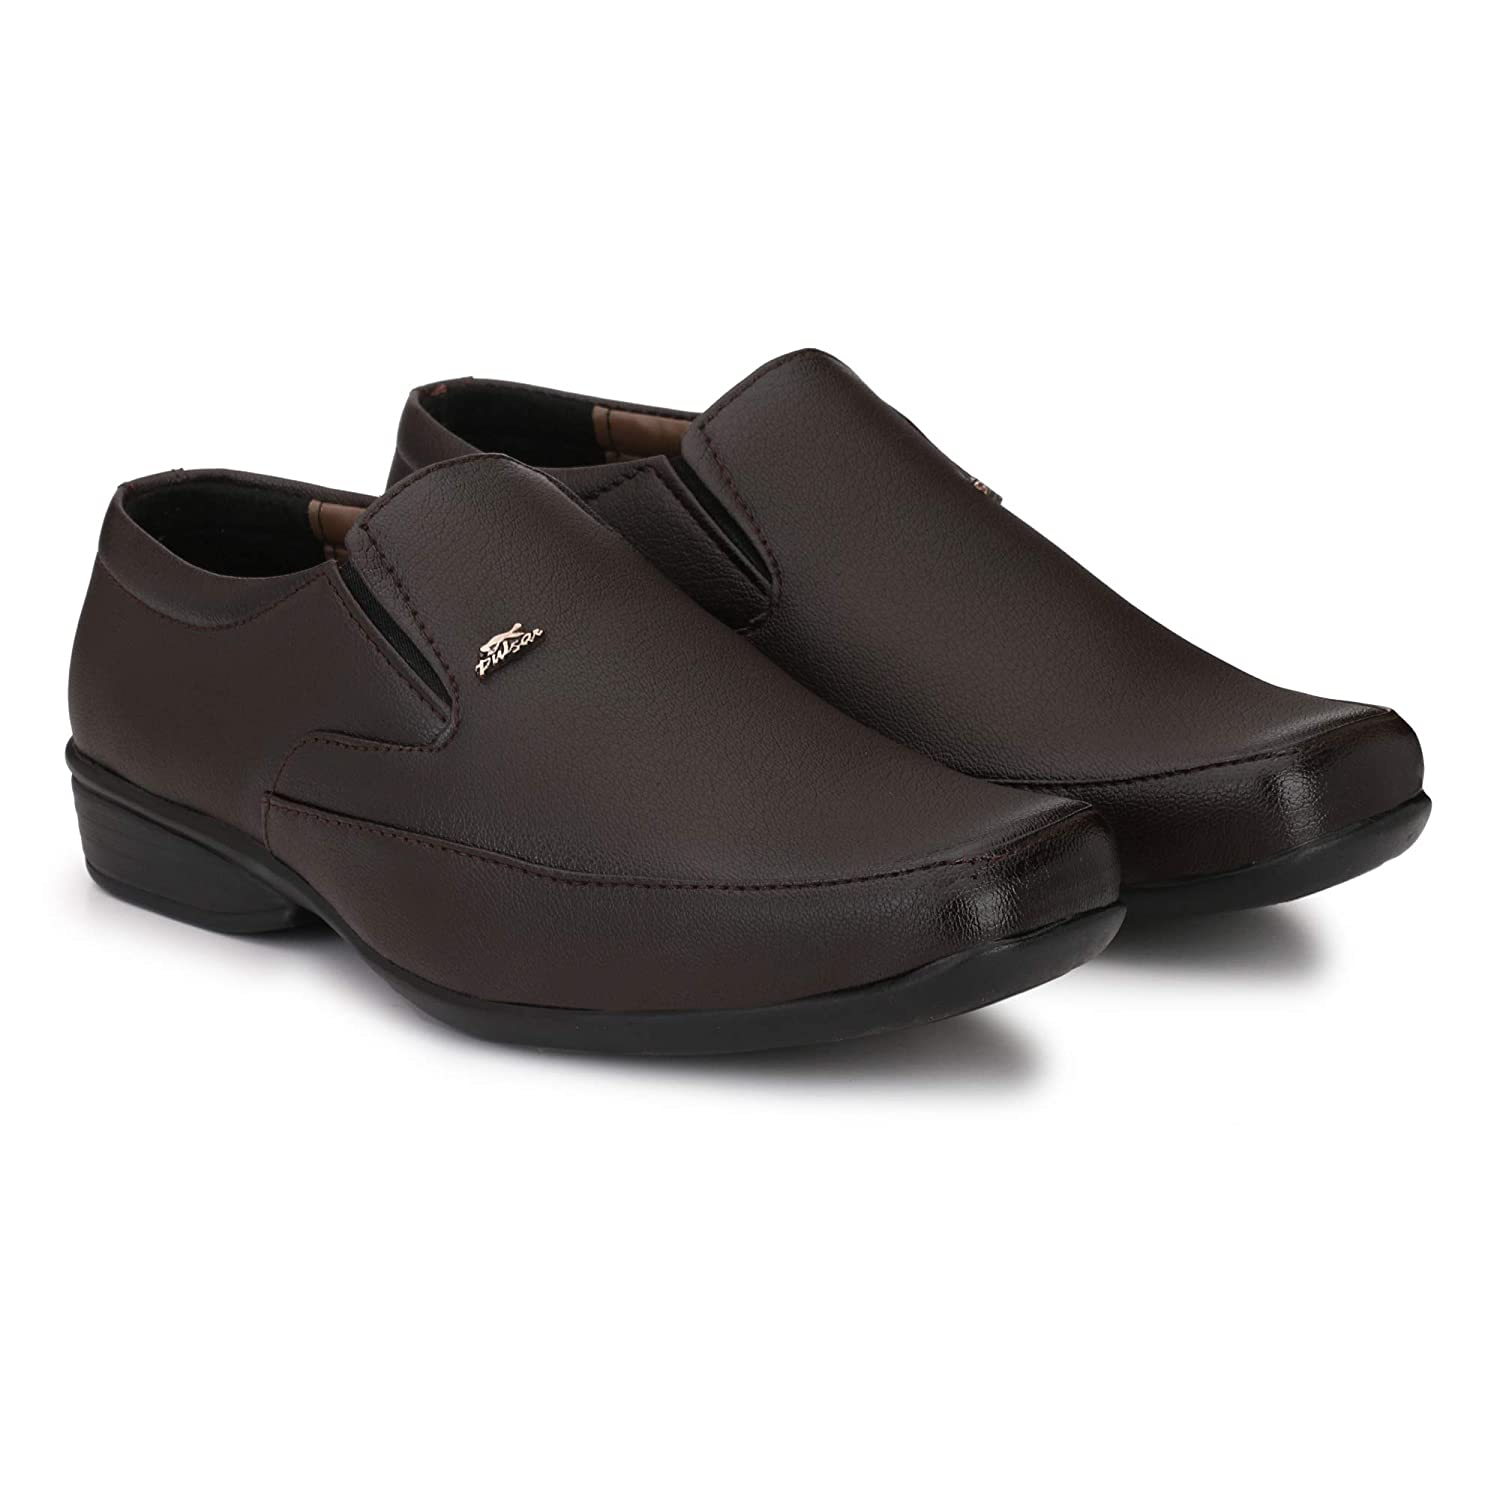 Stylelure Synthetic Leather Black Formal Shoes For Men Best For